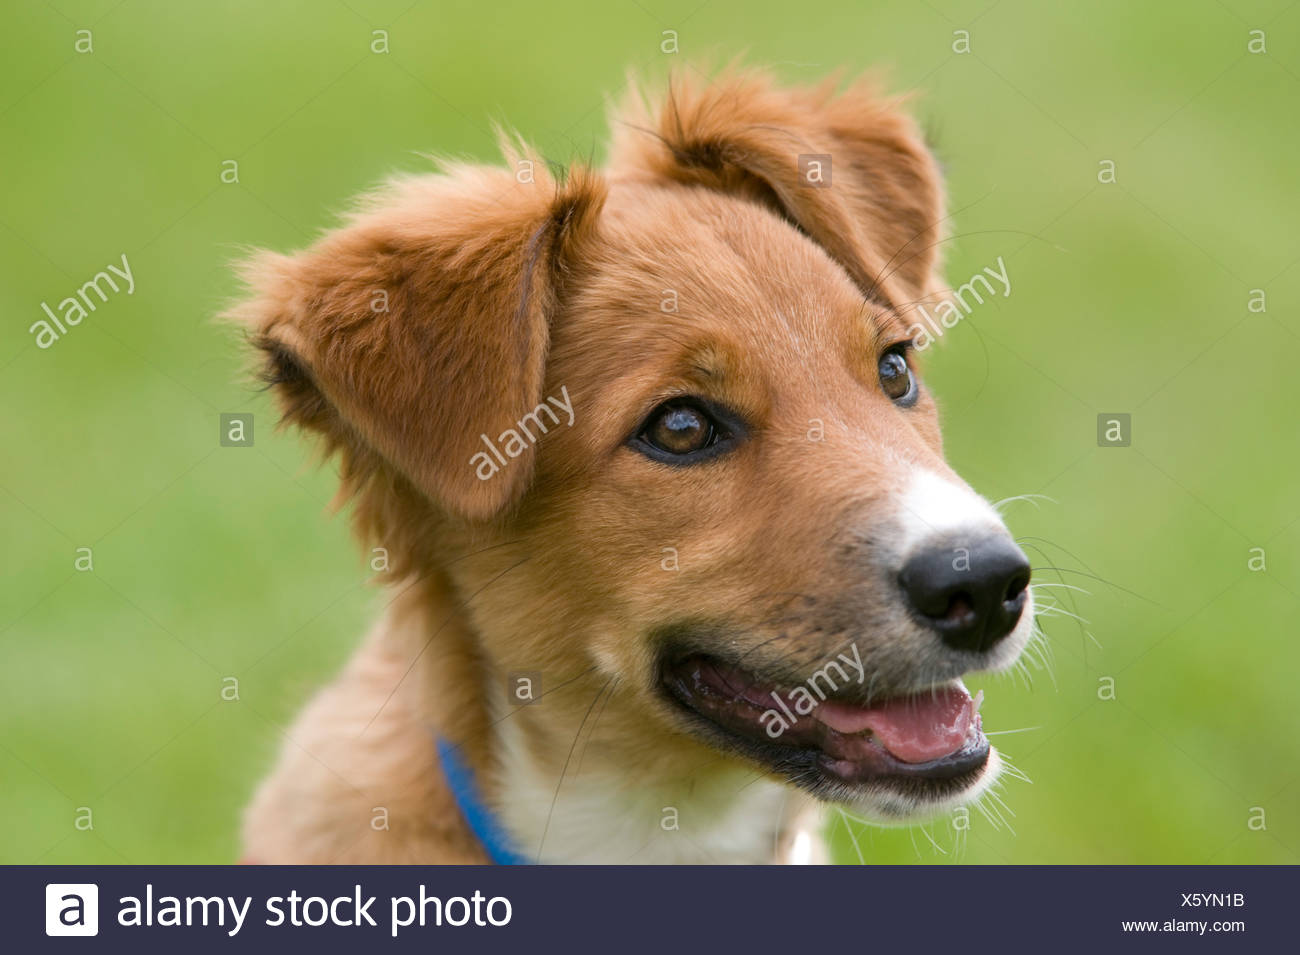 Collie Crossbred Dog Puppy UK - Stock Image